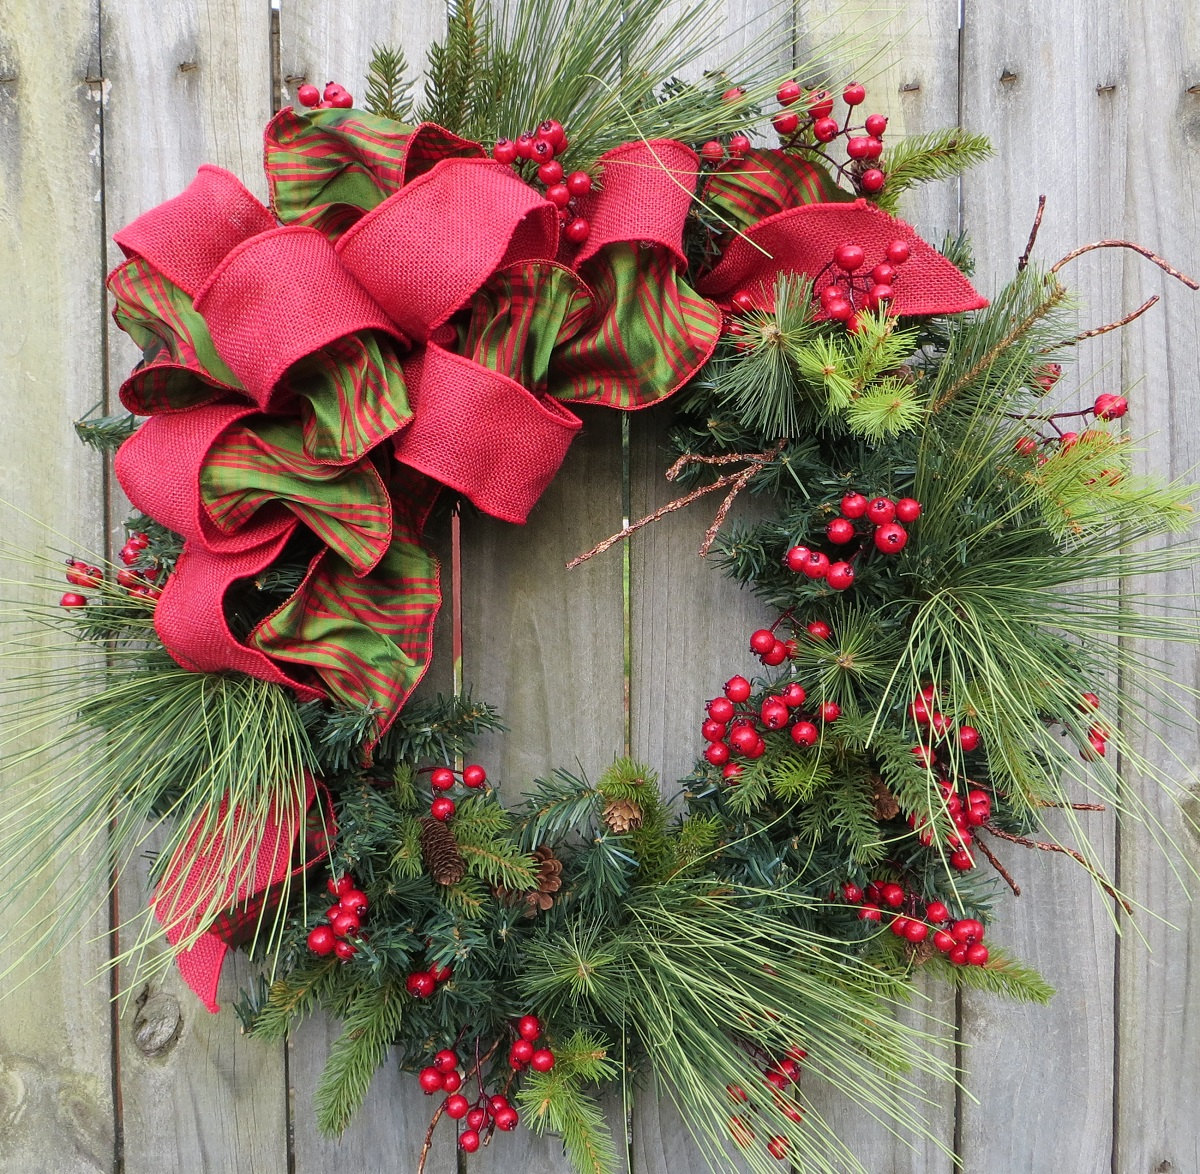 Gentil Christmas Wreath Decorating Ideas